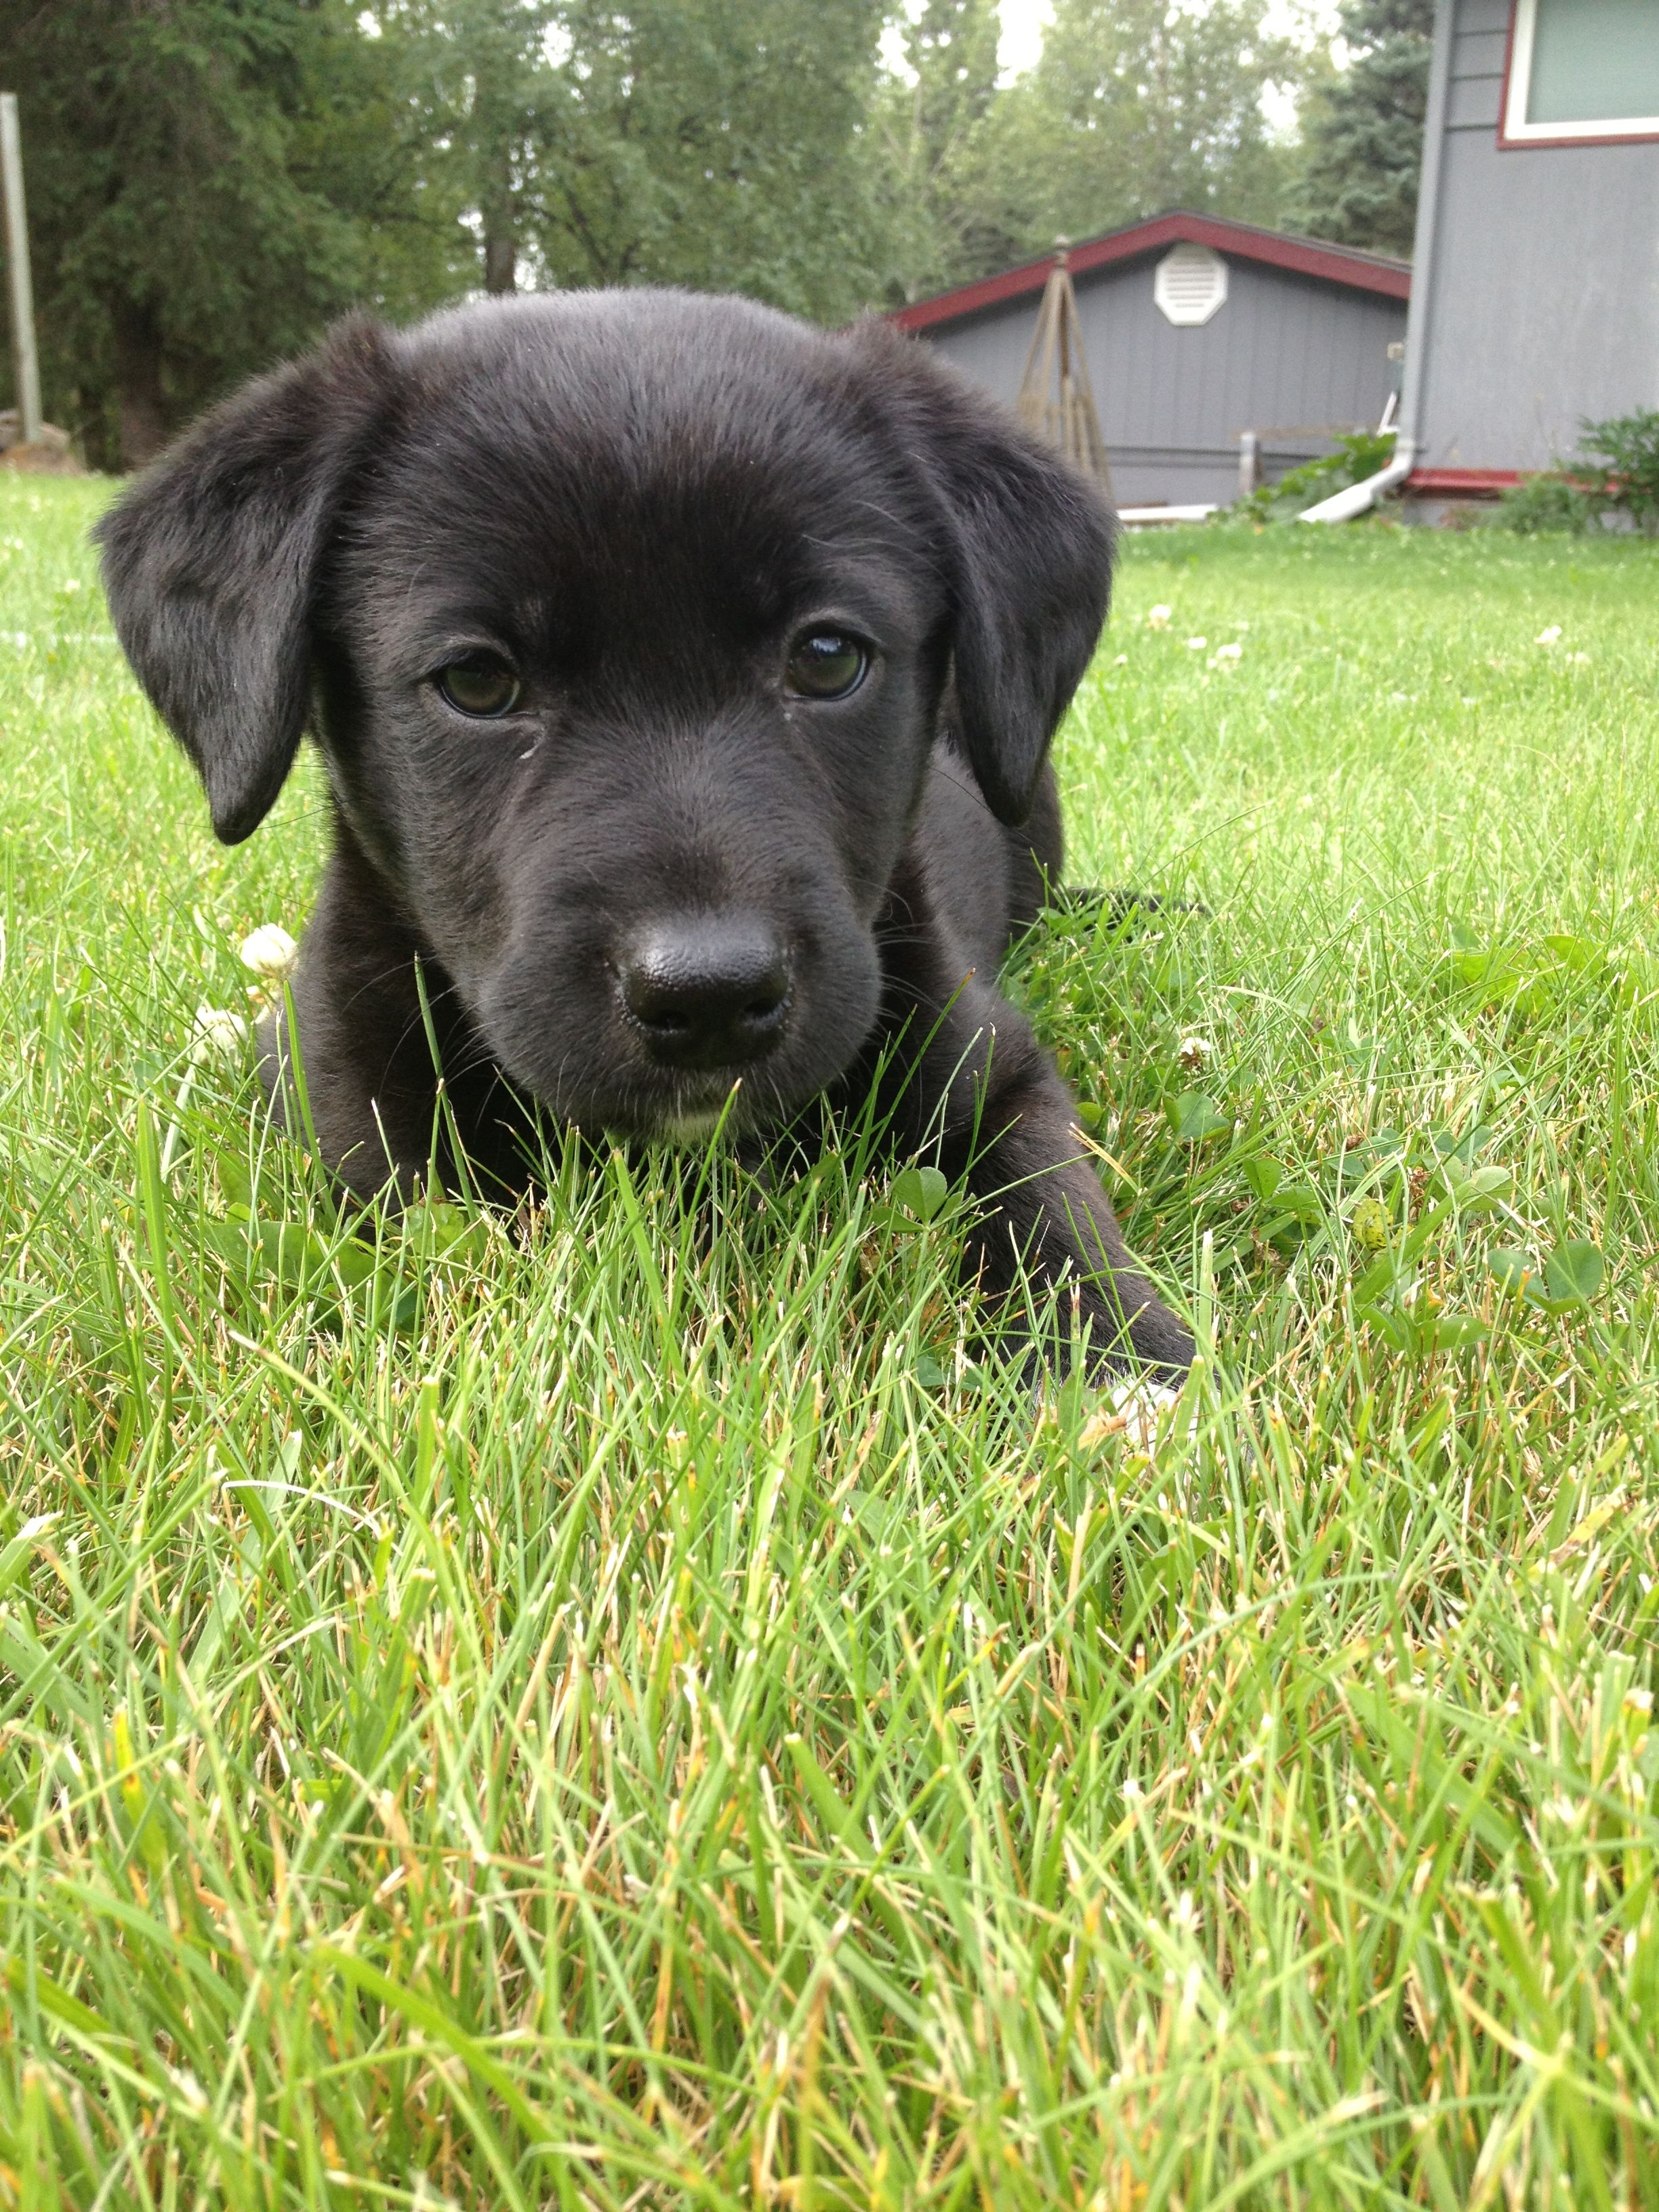 Black Lab Huskie Mix This Is My Rescue Puppy She S 8 Weeks Old And The Runt We Named Her Oreo Because Of Her Black And Whit Rescue Puppies Puppies Big Dogs